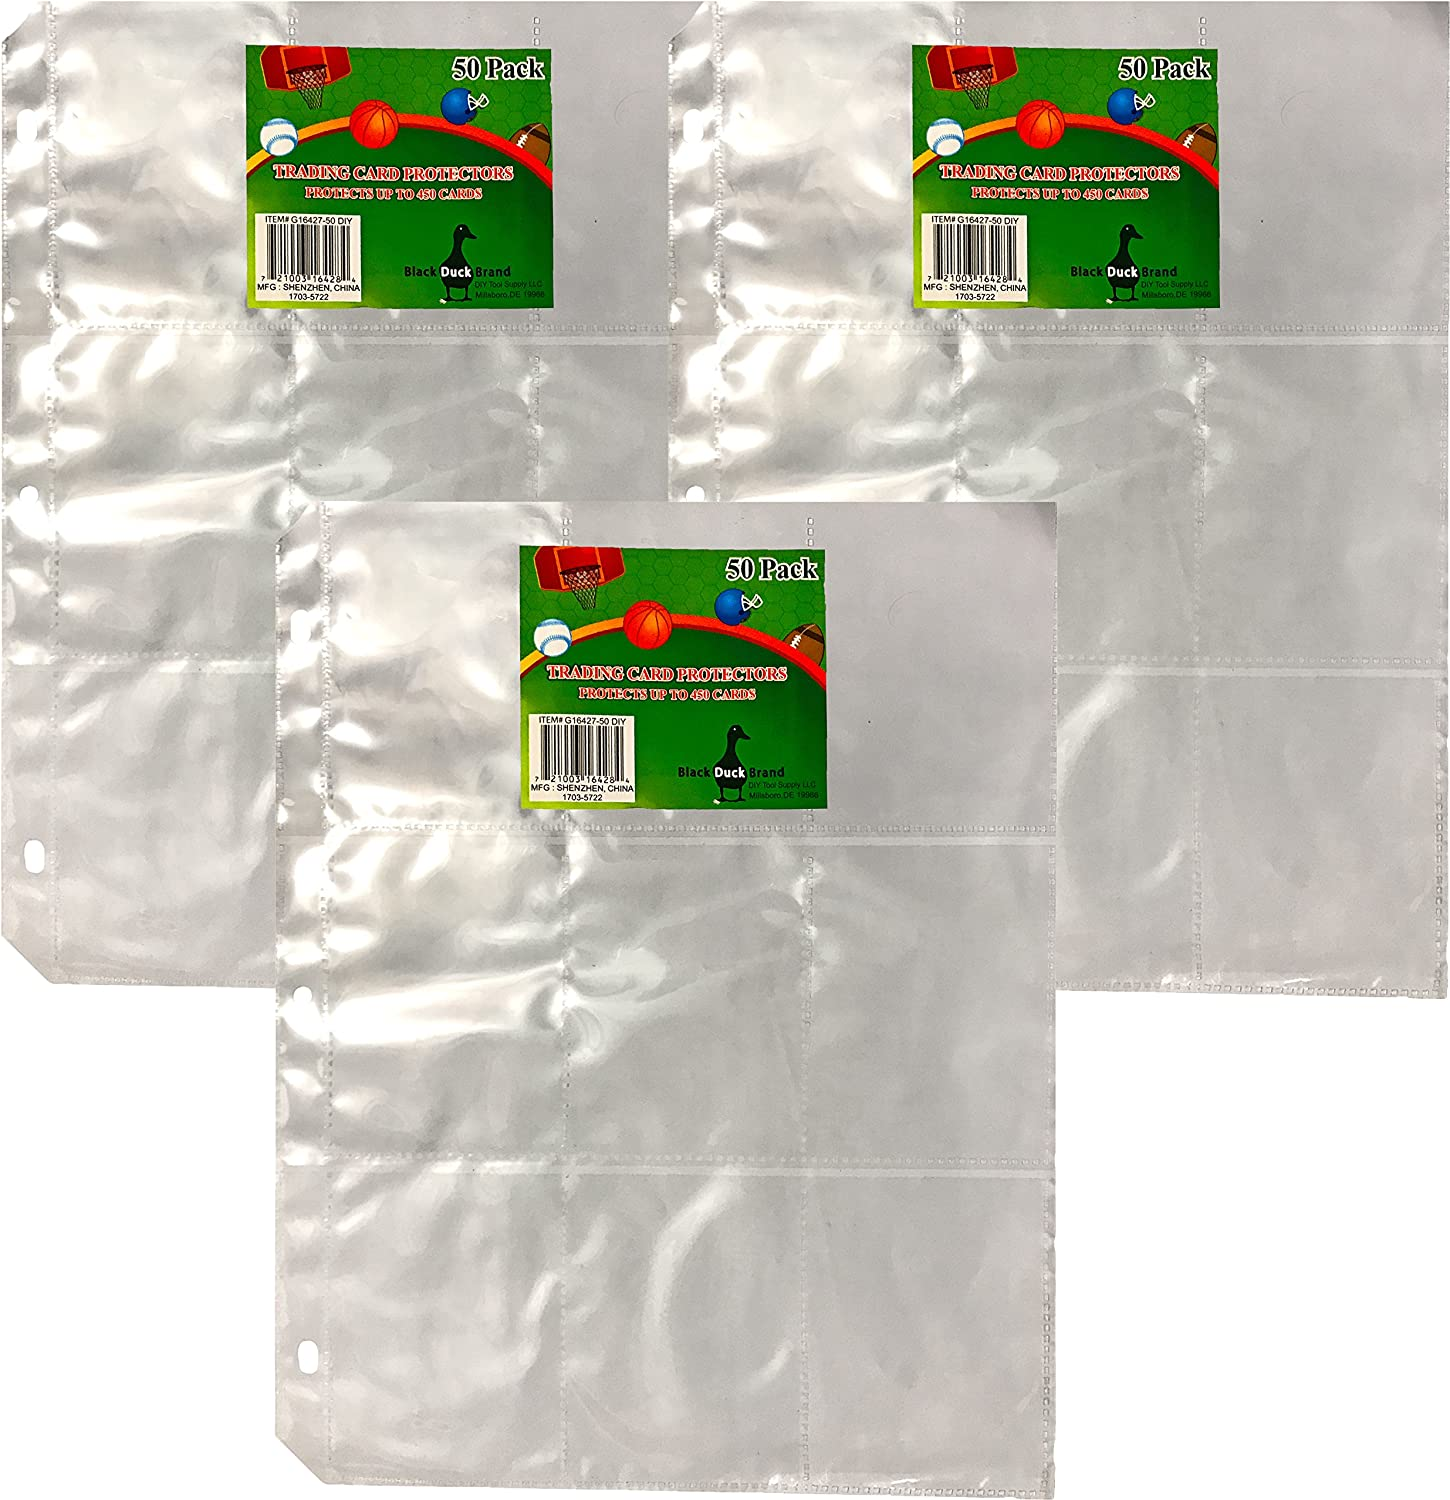 Trading Card Predector Sheets 9 Pocket X 150 Plastic Pages Holds 1,350 Cards -3 Ring Binder